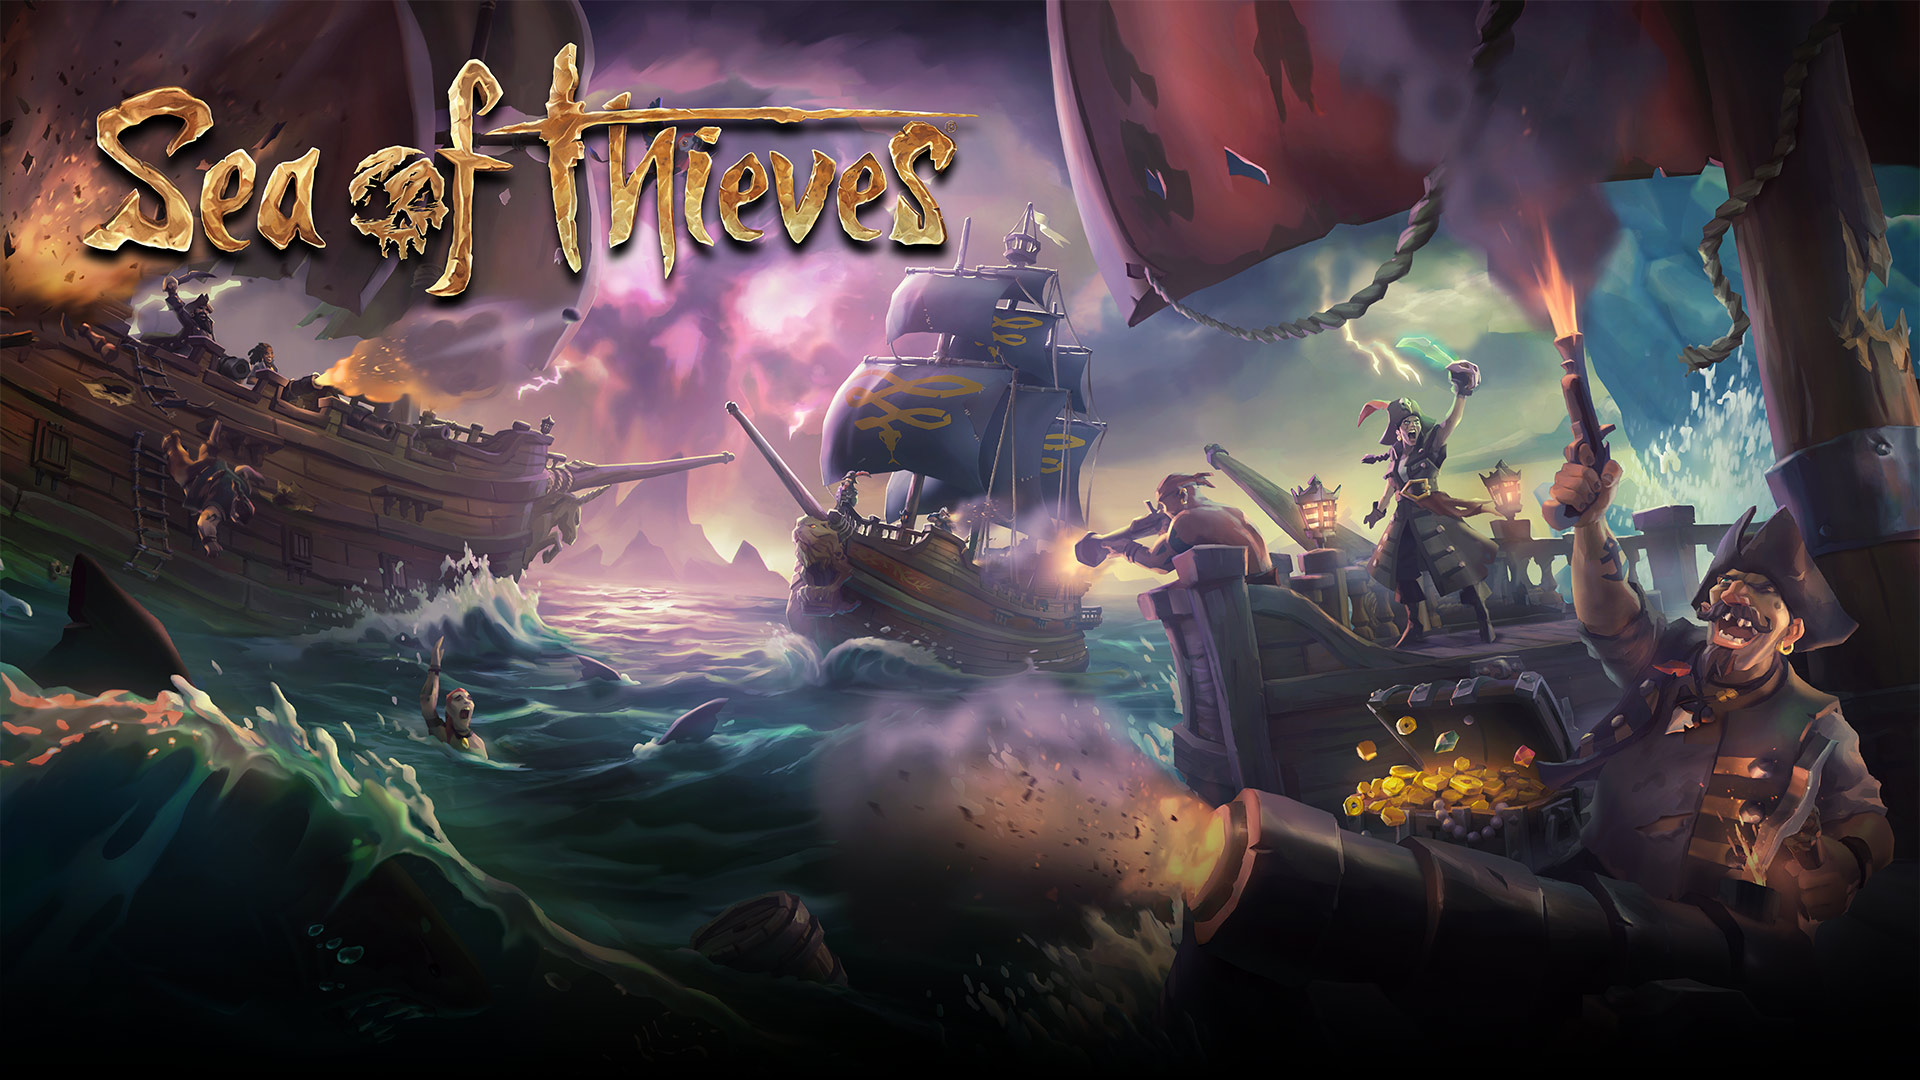 Sea of Thieves beta access key